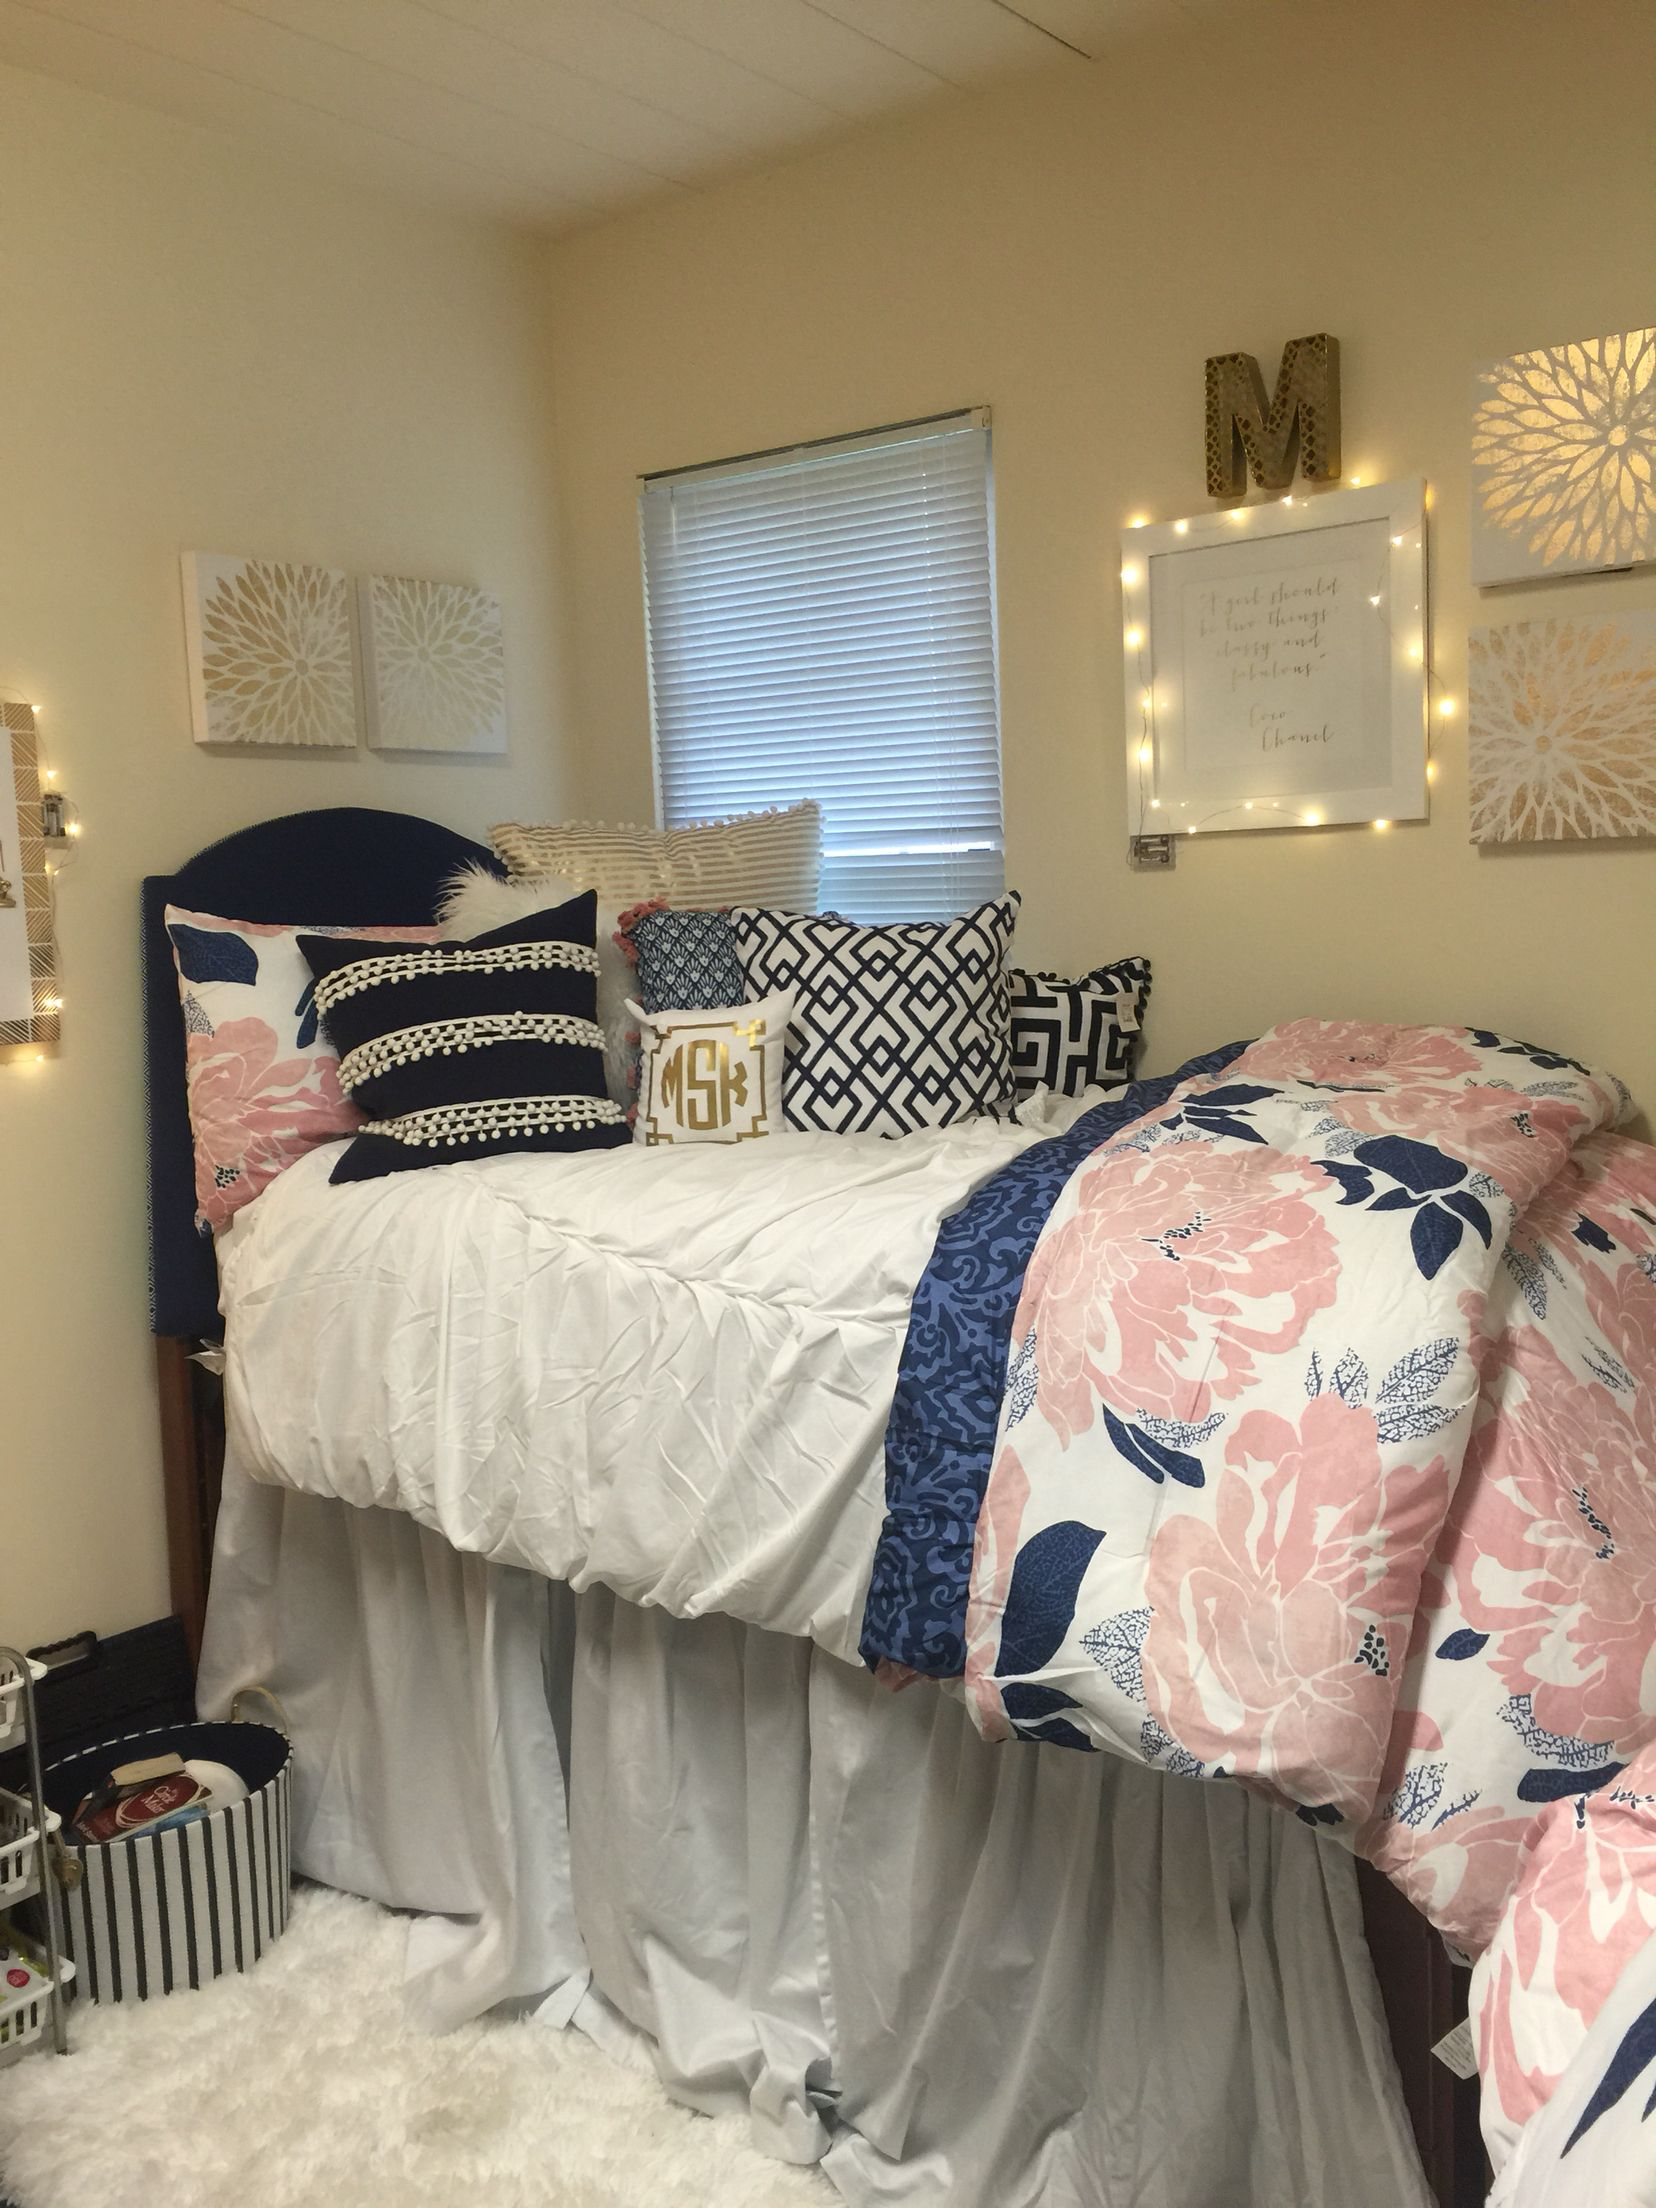 Navy Pink White With Gold Accents For A Clean Yet Cozy And Calm